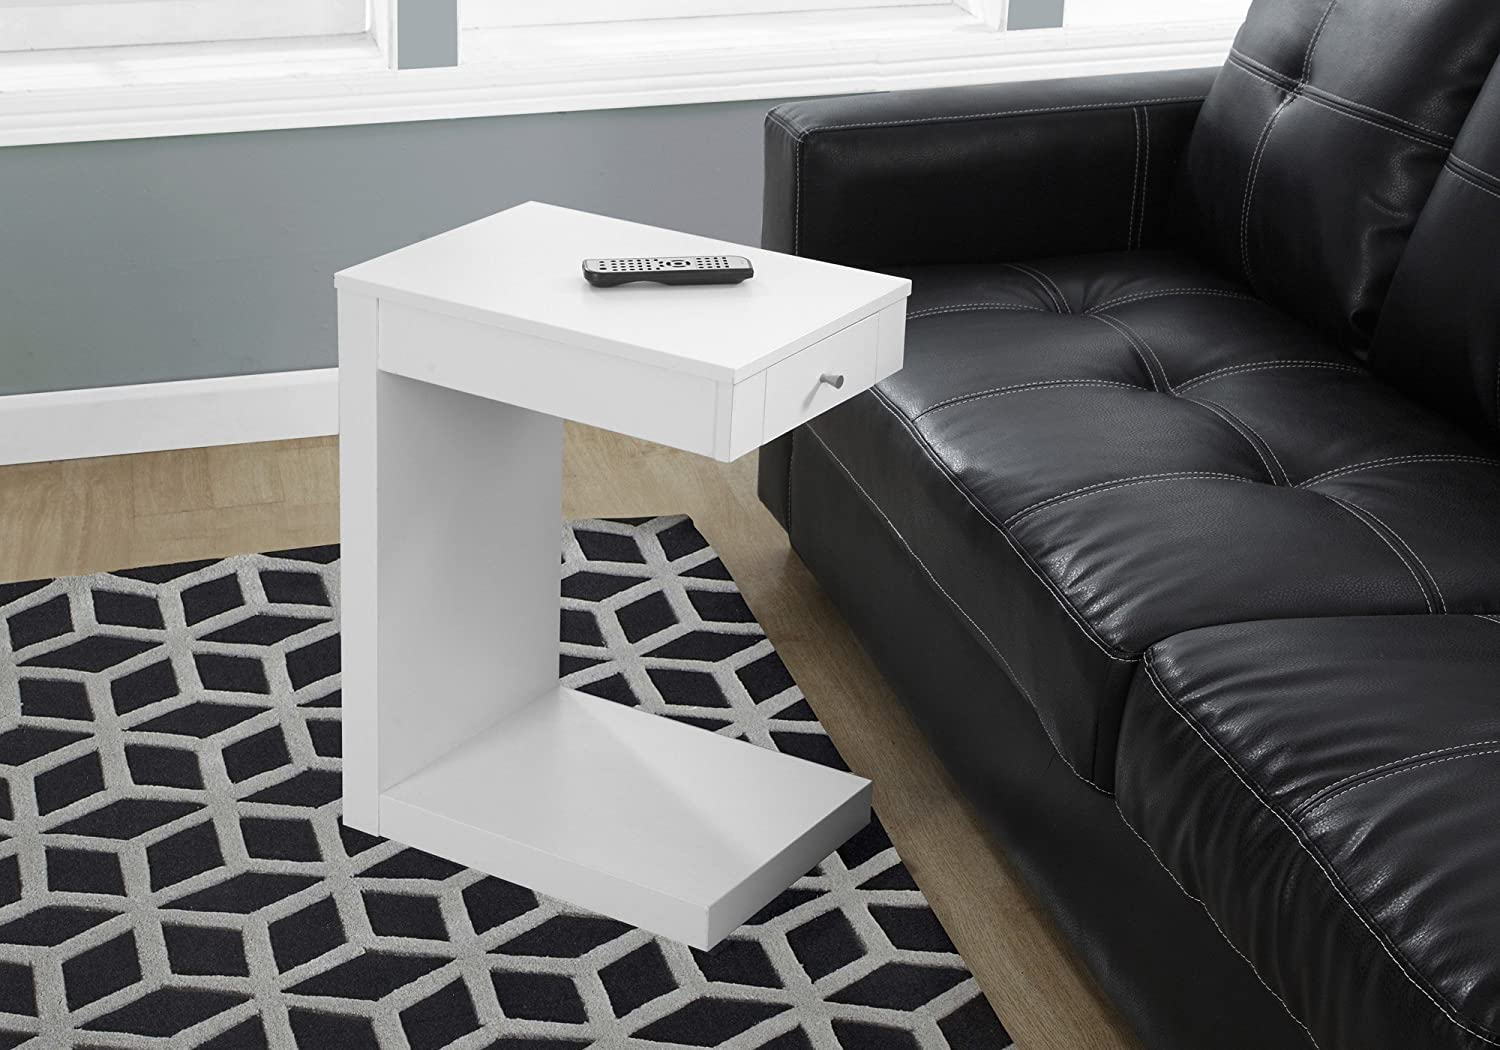 Monarch Specialties I 3192 Accent Table with A Drawer, White